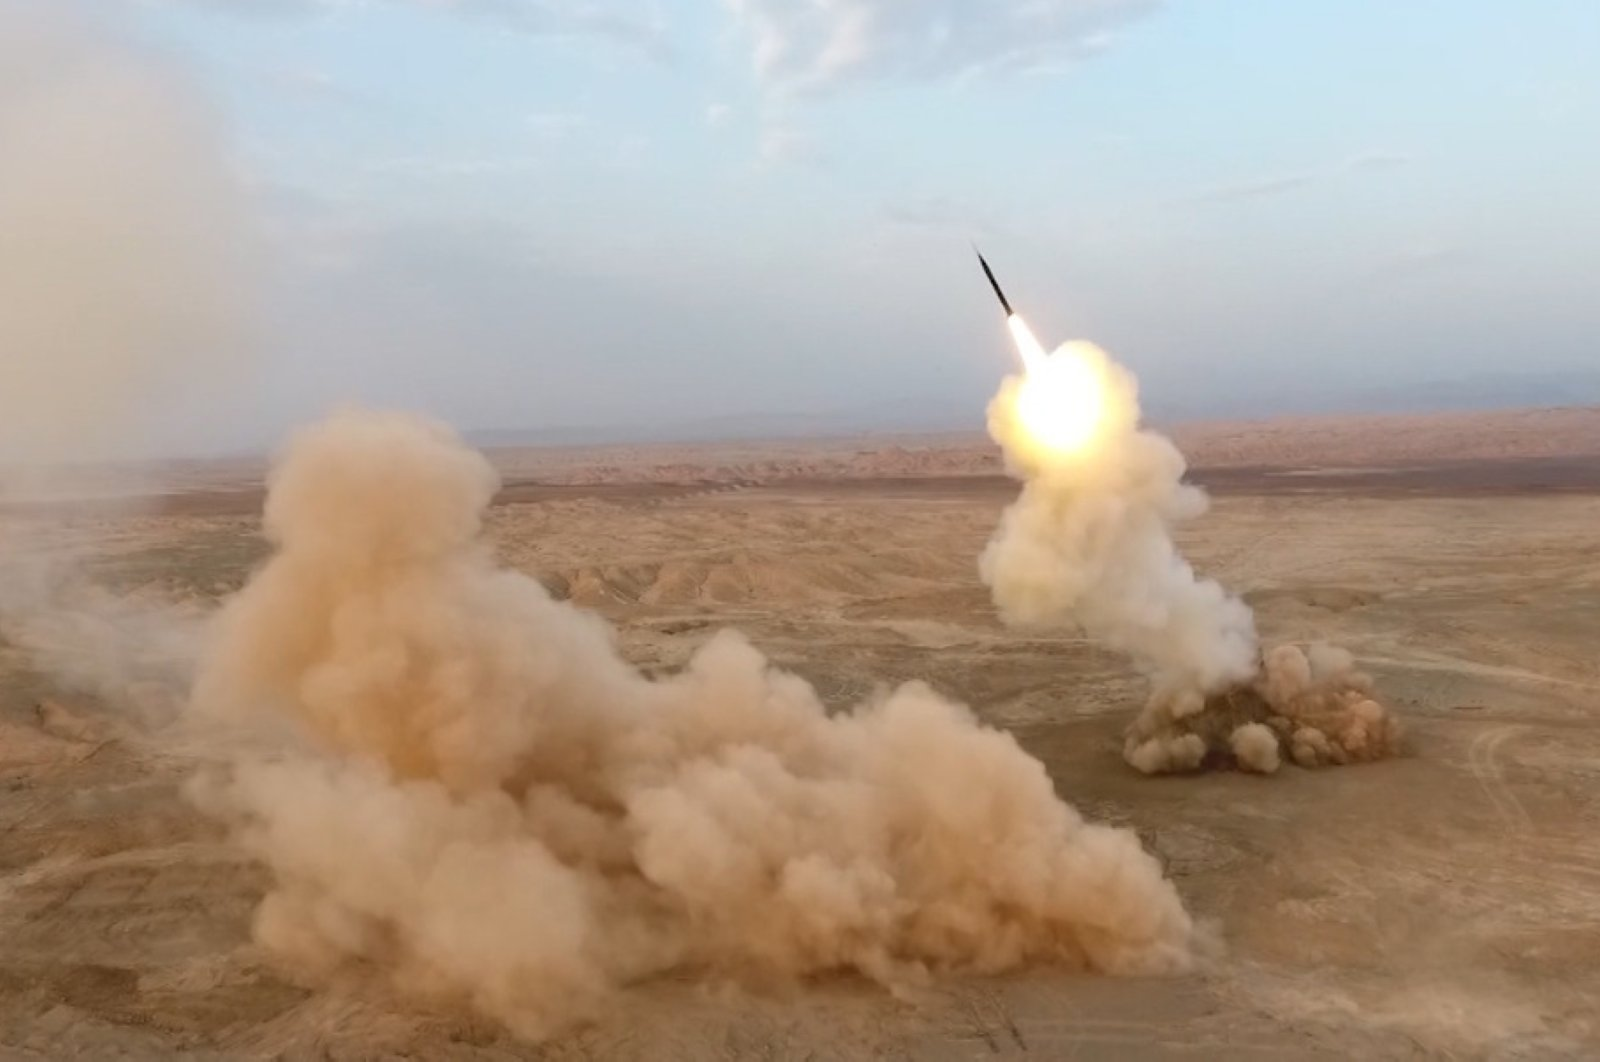 This file photo provided by Iran's Revolutionary Guard Corps (IRGC) official website via SEPAH News on July 28, 2020, shows ballistic missiles being launched from underground by Iran's Revolutionary Guard Corps (IRGC) during the last day of military exercises near sensitive Gulf waters. (AFP PHOTO / IRGC via SEPAH NEWS)